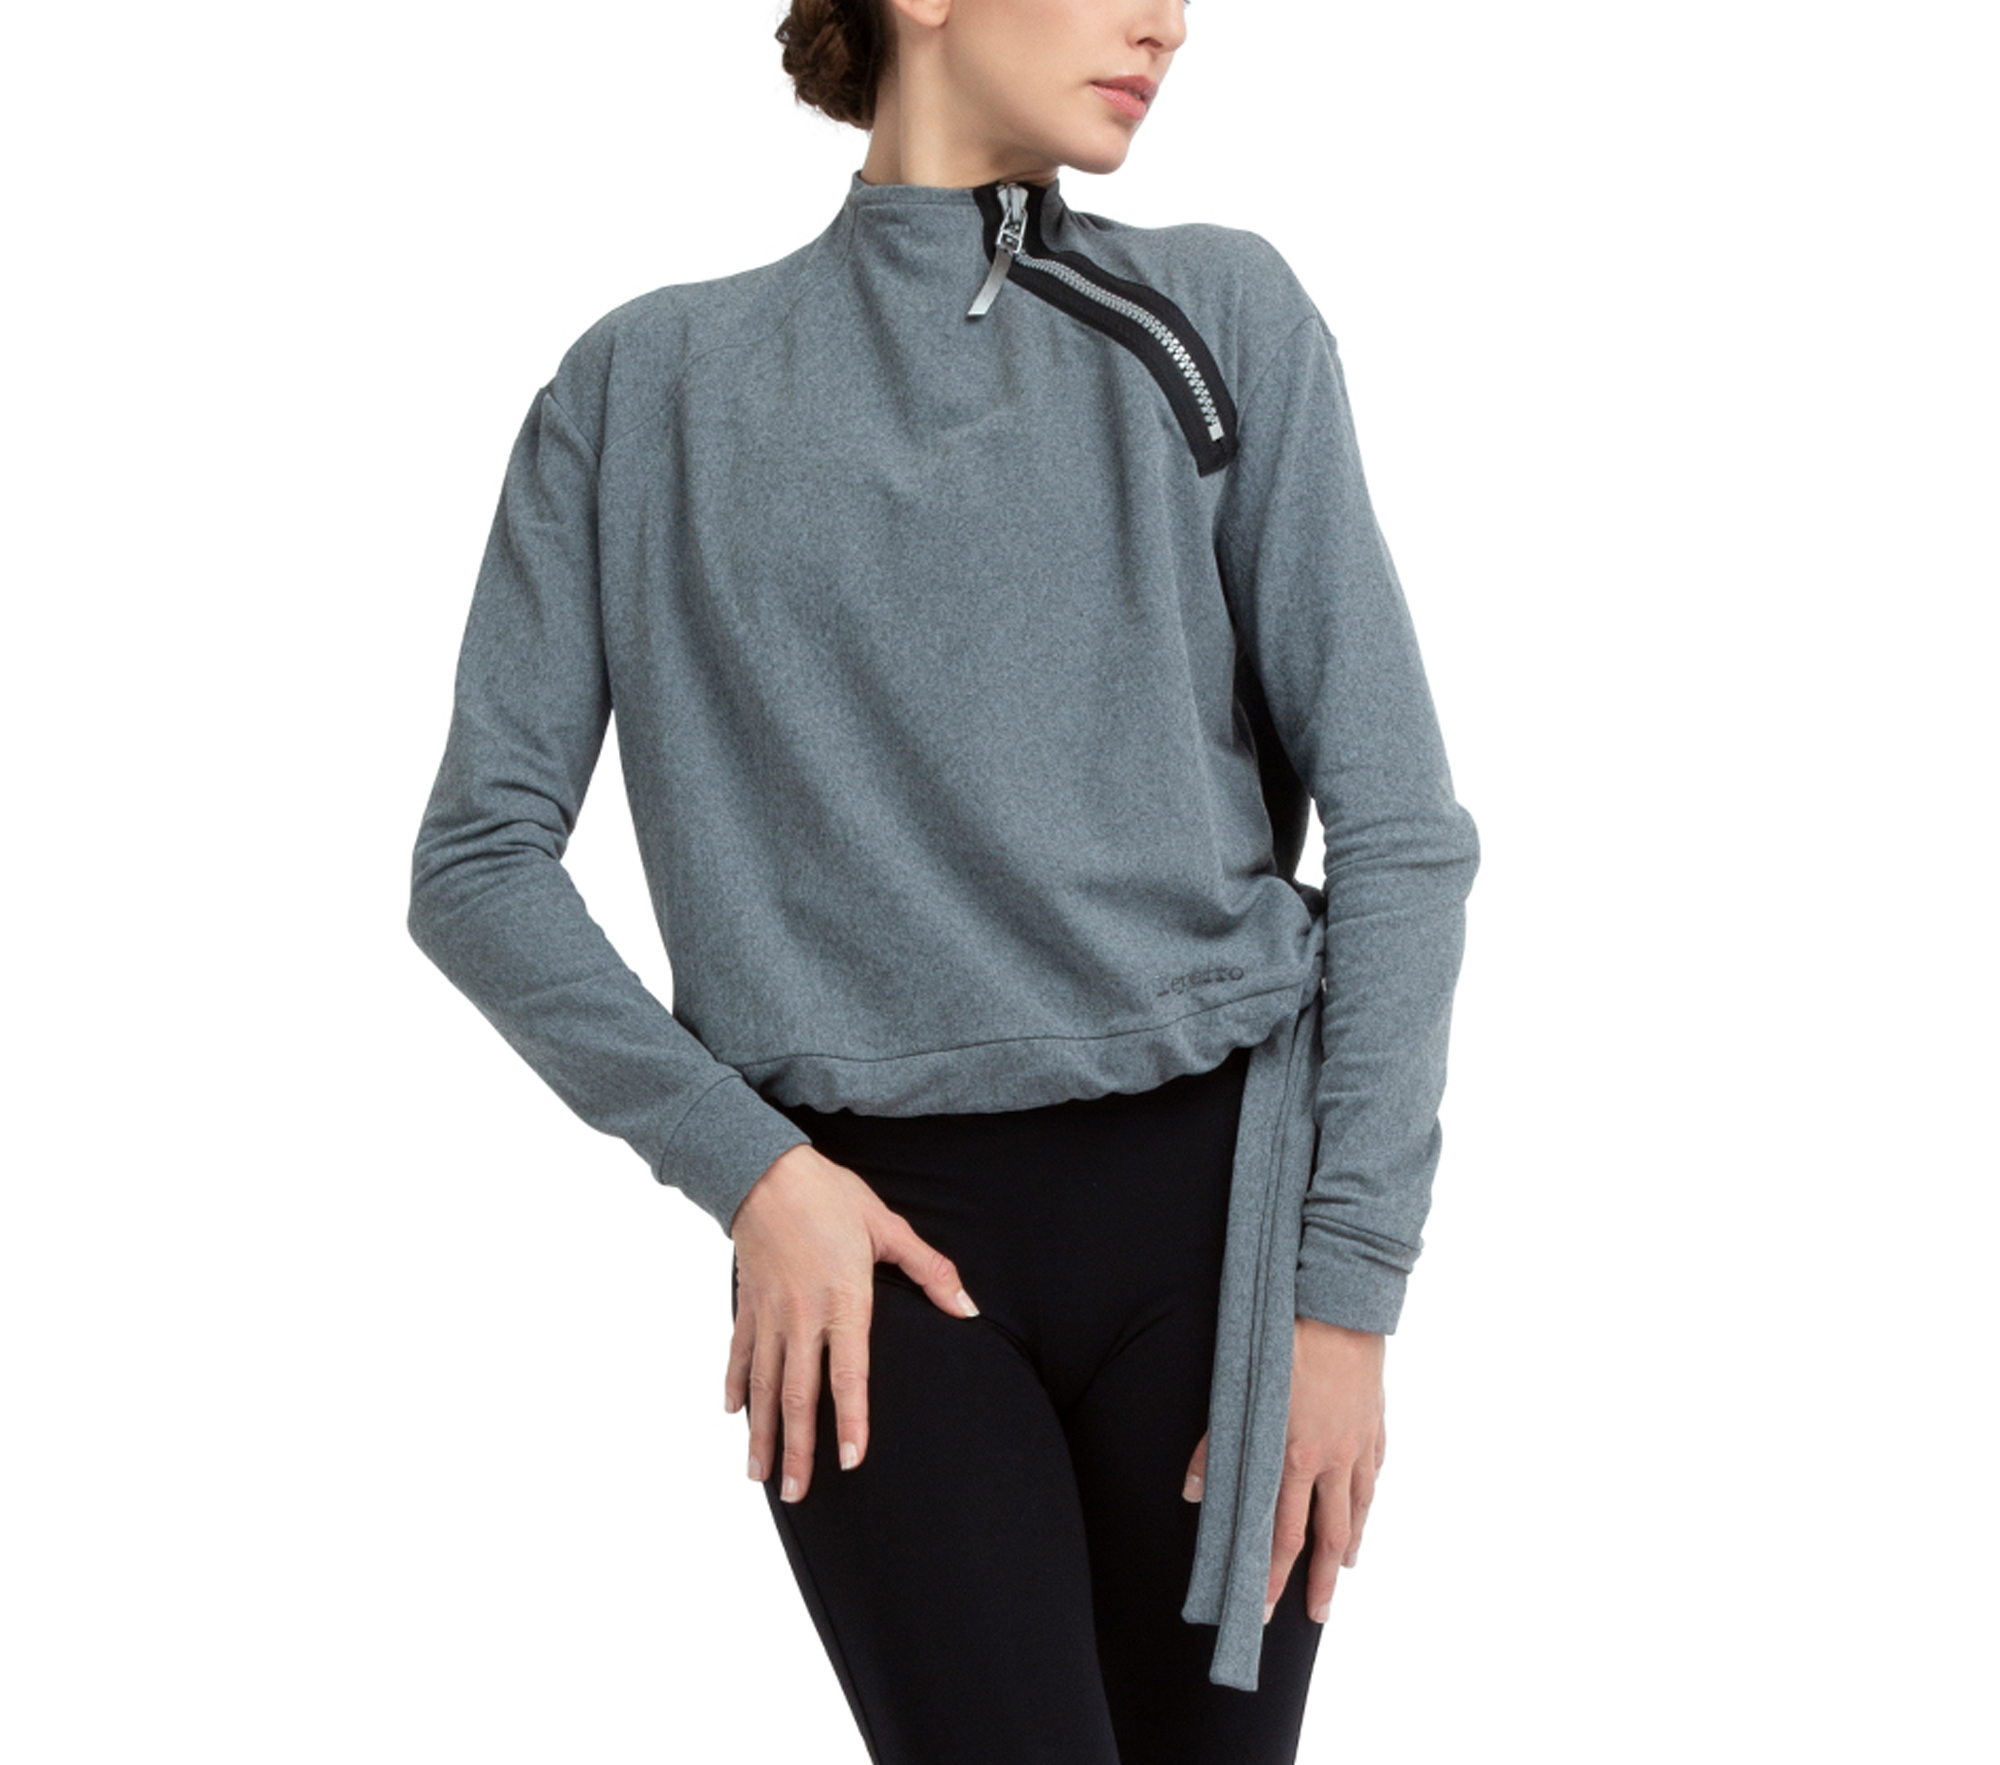 Power-stretch technical sweater